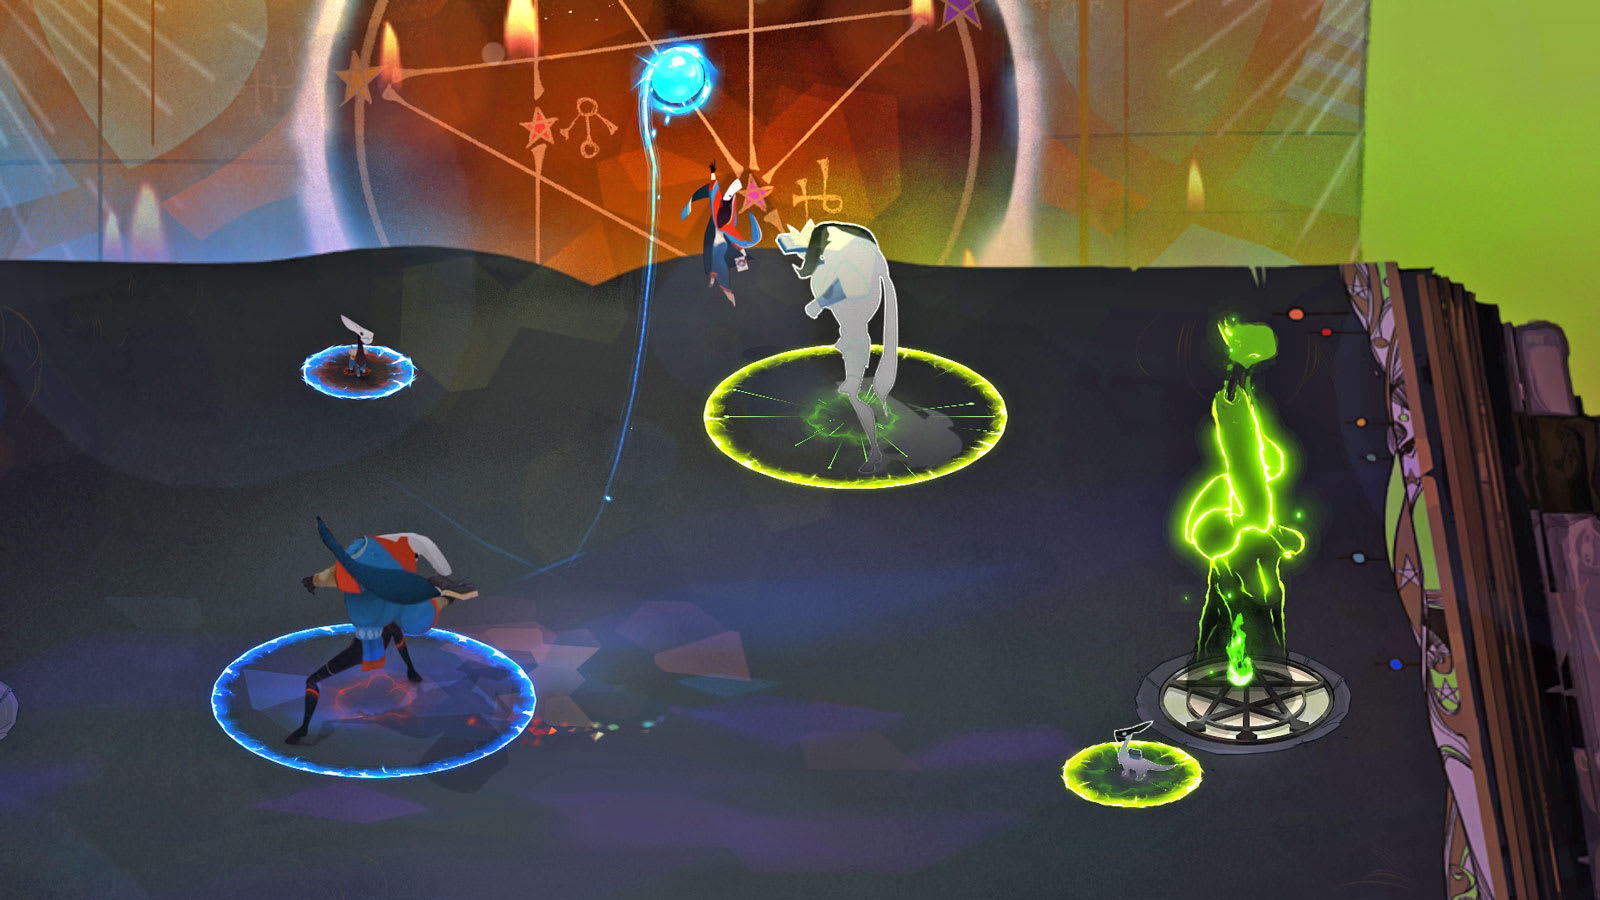 Pyre' is an awesome sports game masquerading as fantasy heroics